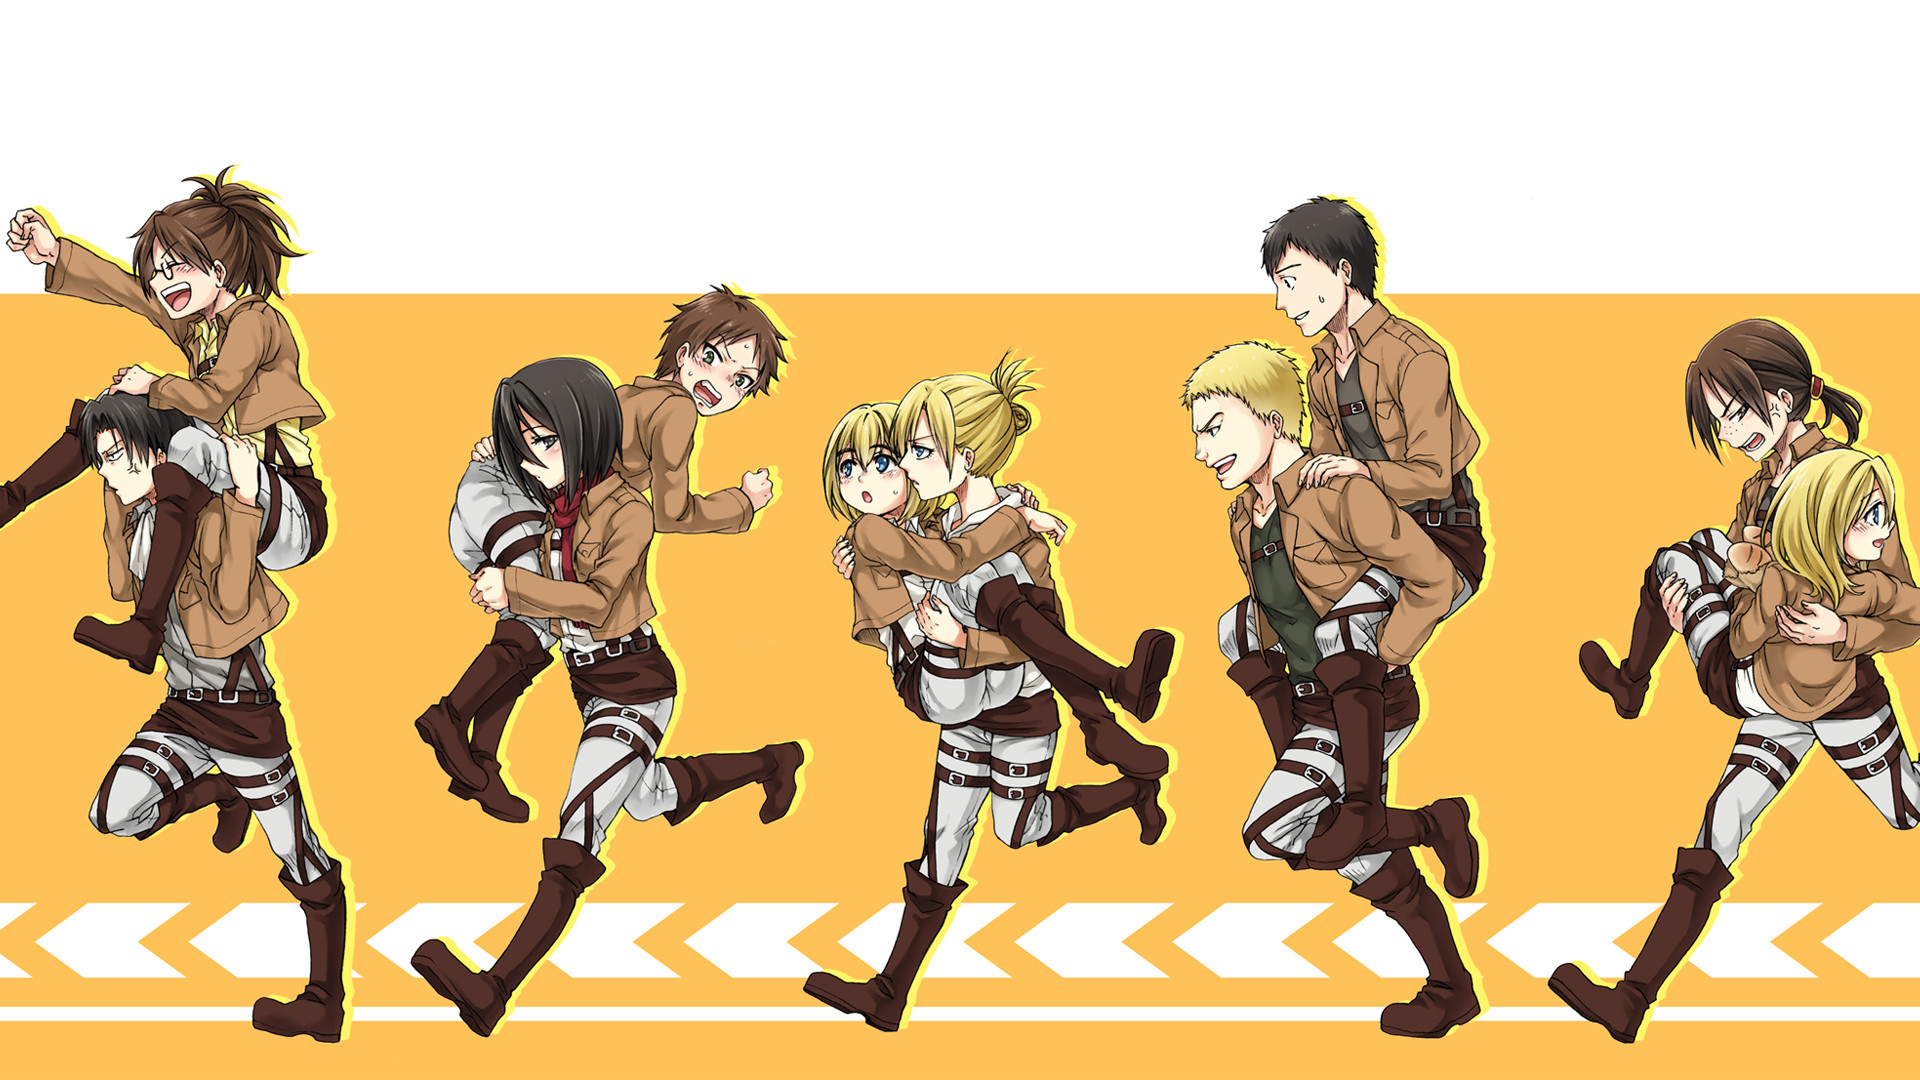 1920x1080 Anime - Attack On Titan Shingeki No Kyojin Historia Reiss Sasha Blouse  Reiner Braun Bertolt Hoover